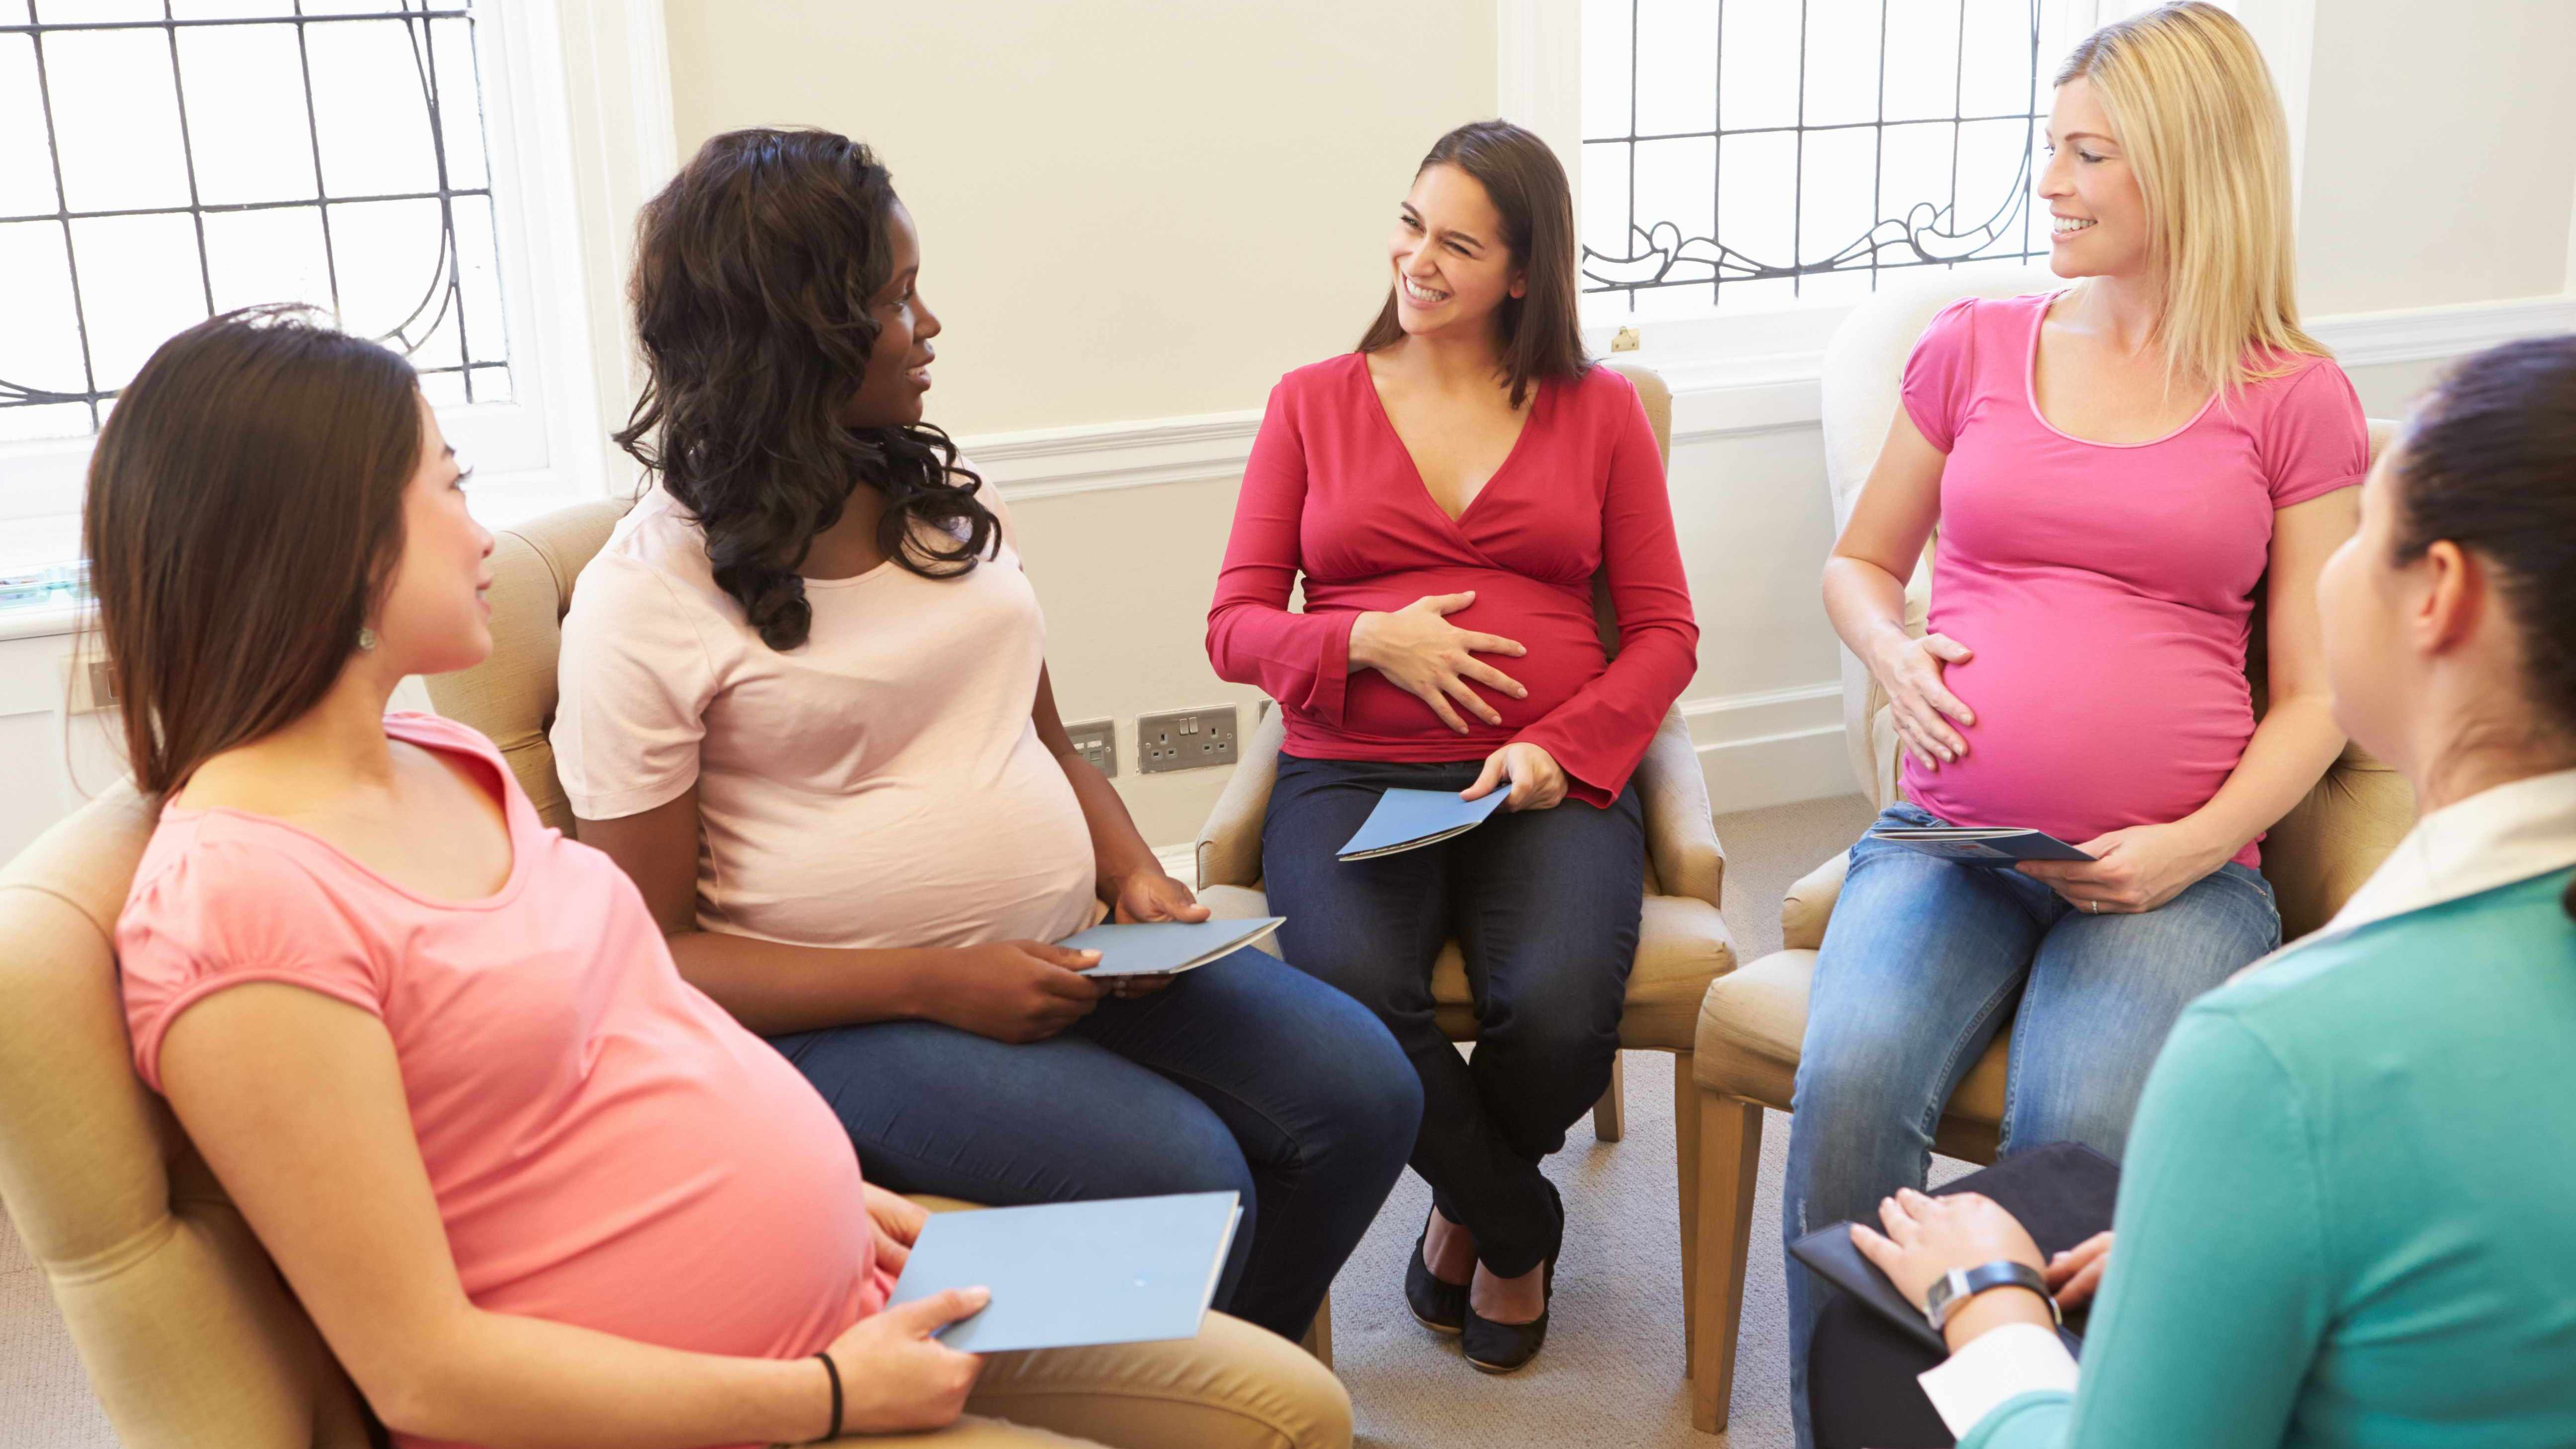 Group of seated, diverse, pregnant females